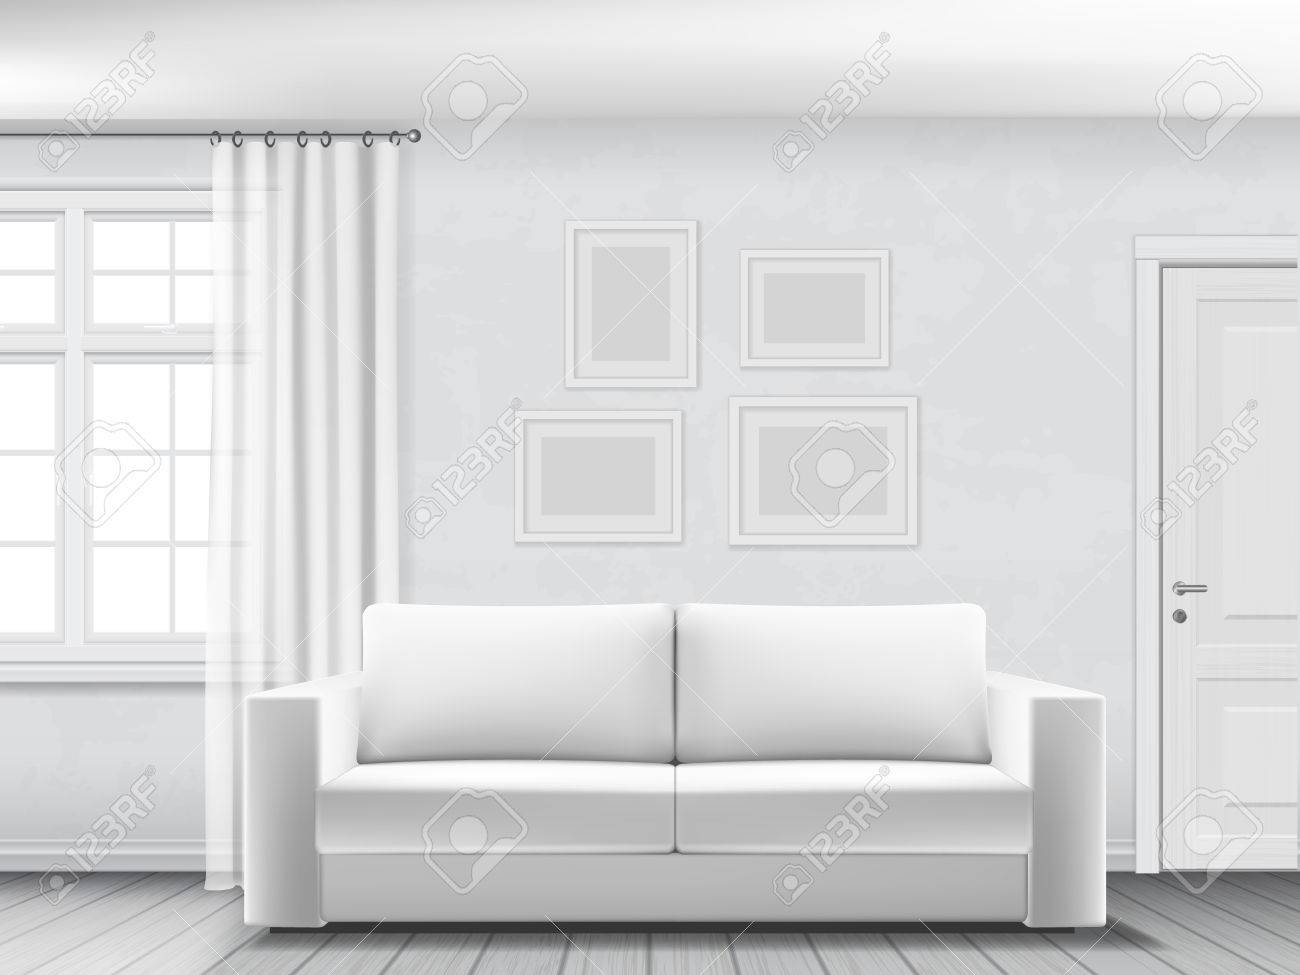 Realistic Interior Of Living Room With White Sofa, Window And ...